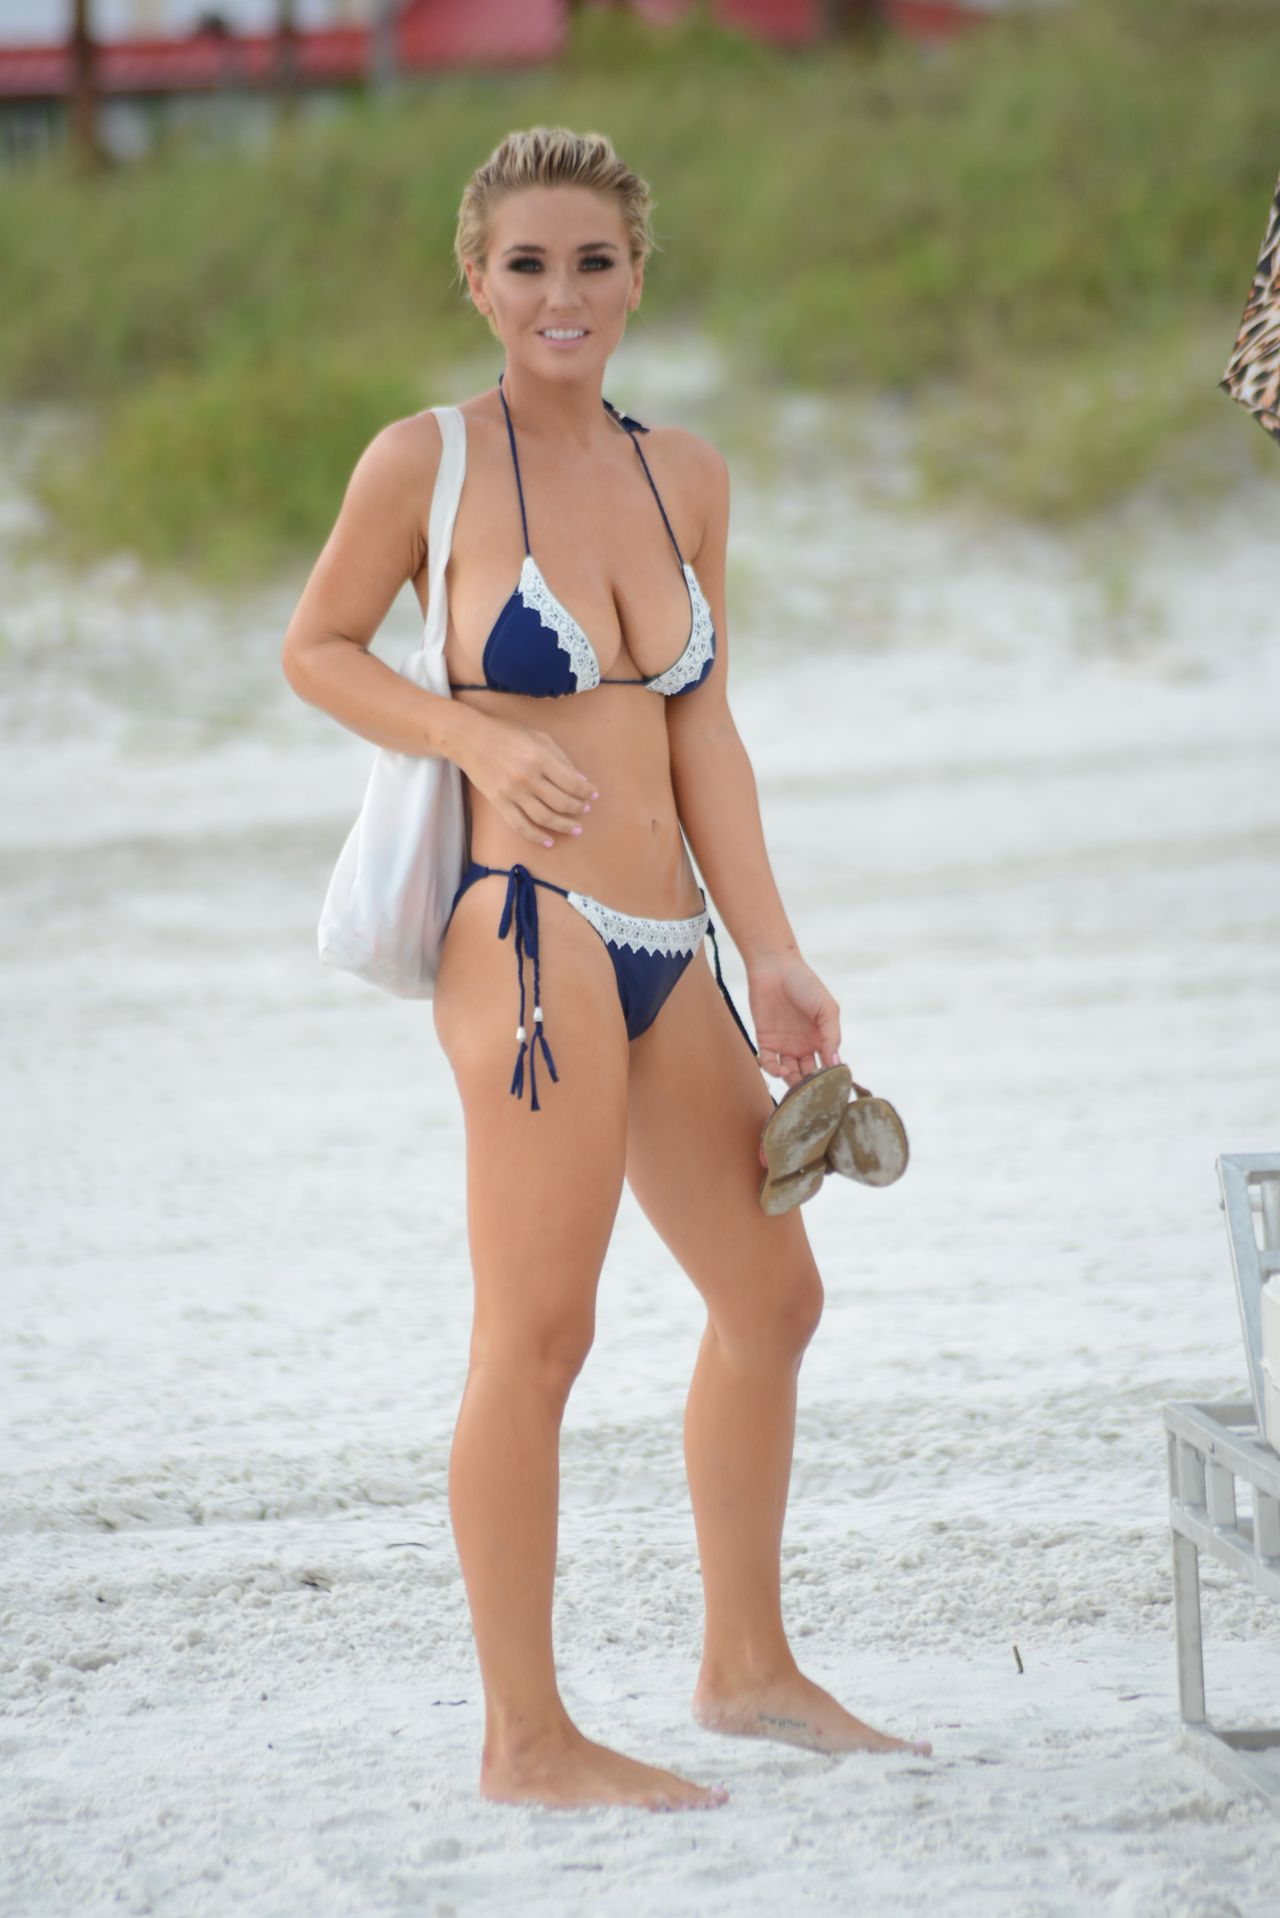 lisa-opie-and-lauren-hubbard-in-bikinis-miami-beach-10-02-2017-13.jpg